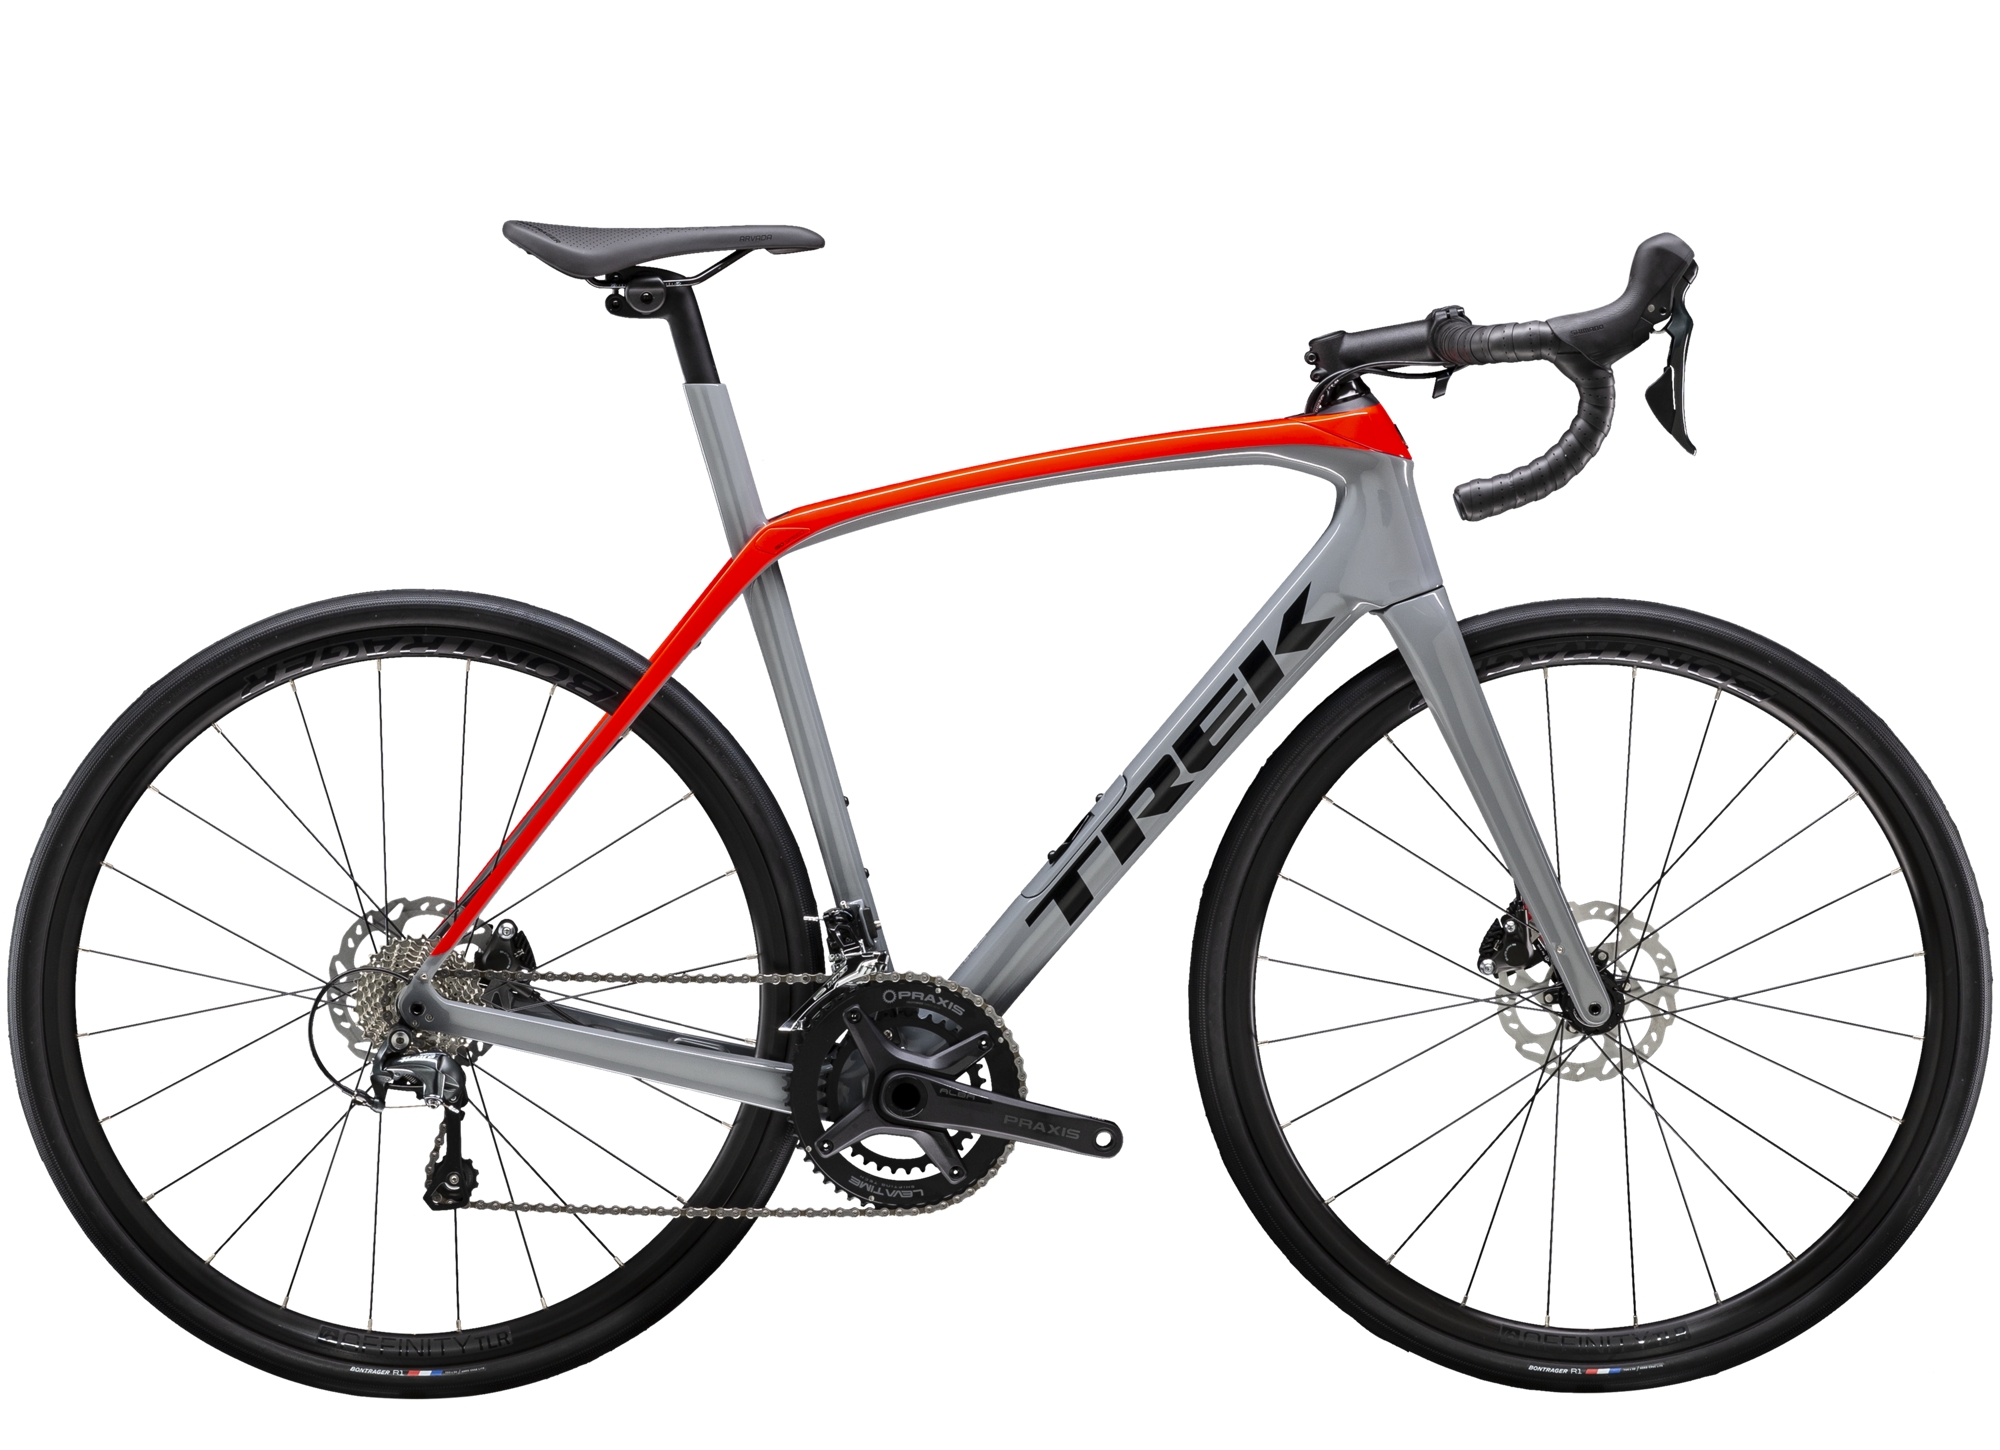 Trek Domane SL 4 Disc Carbon Road Bike 2021 in Grey and Red